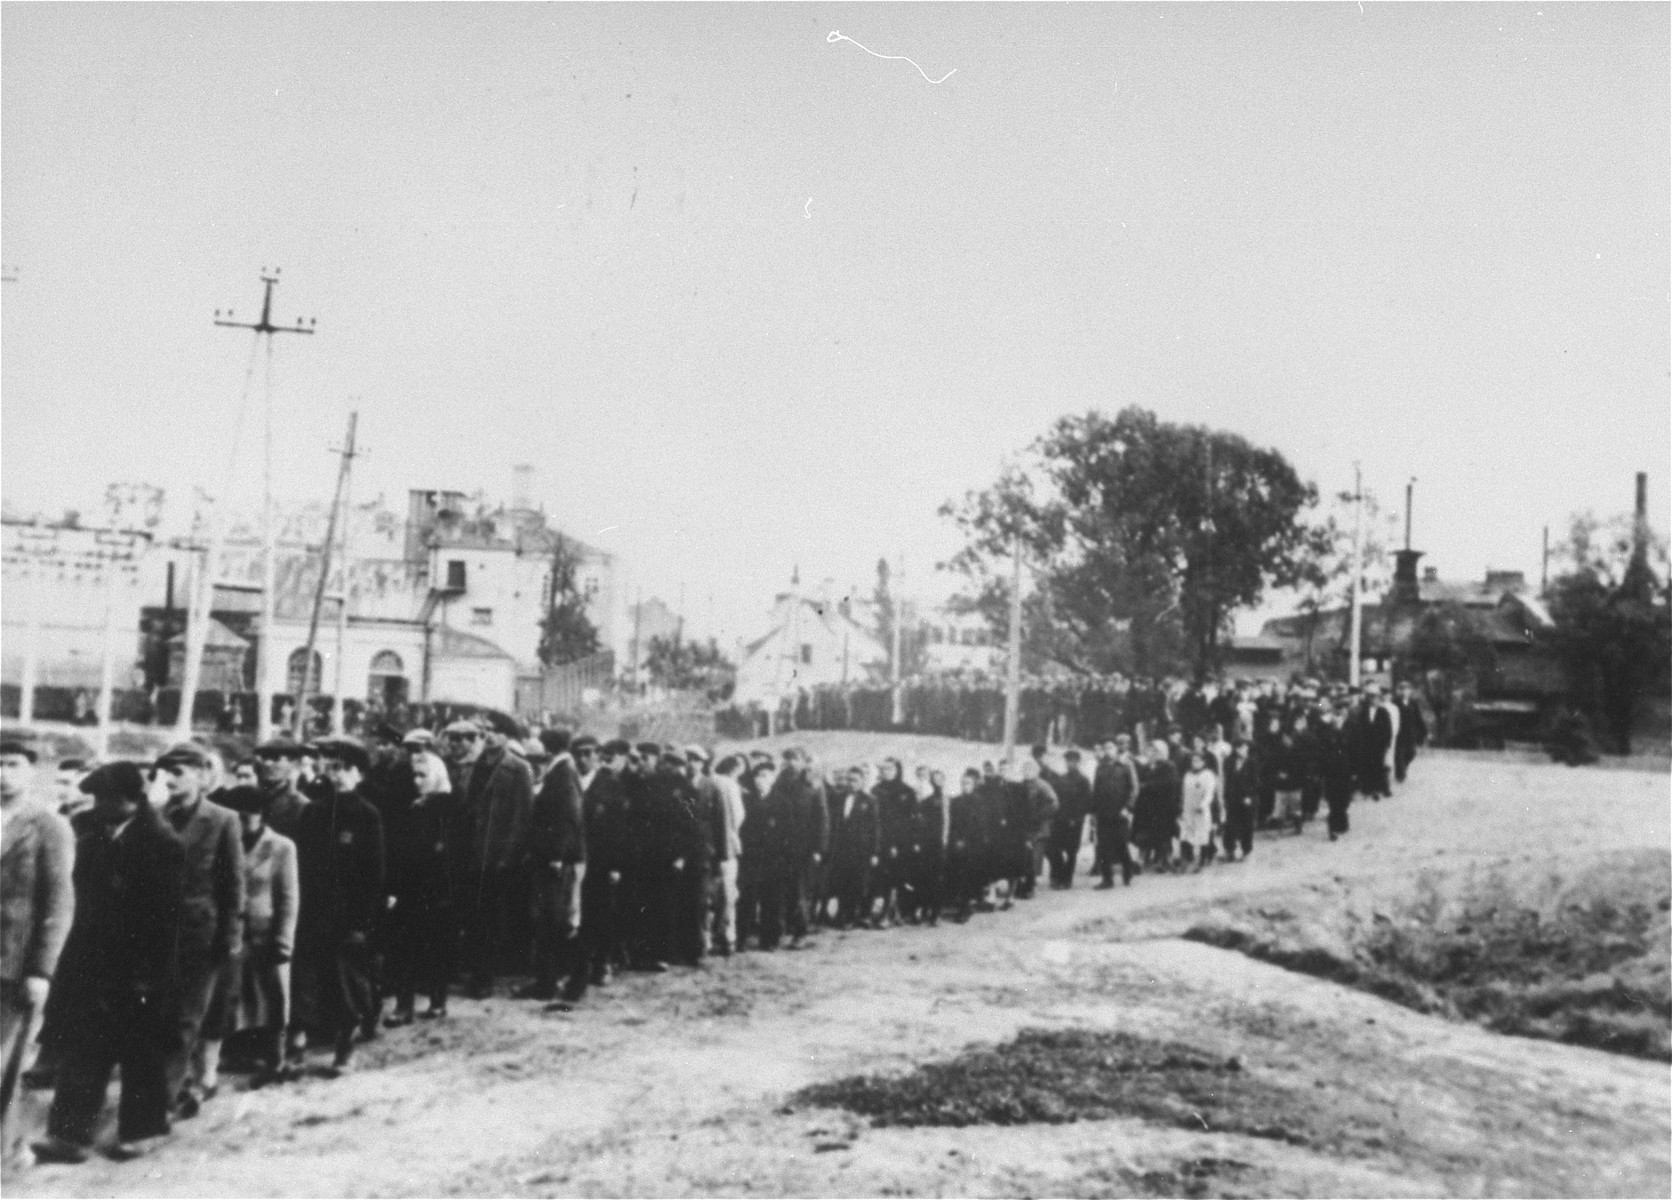 Jews from the Ciechanow ghetto are marched out of town to a fortress.